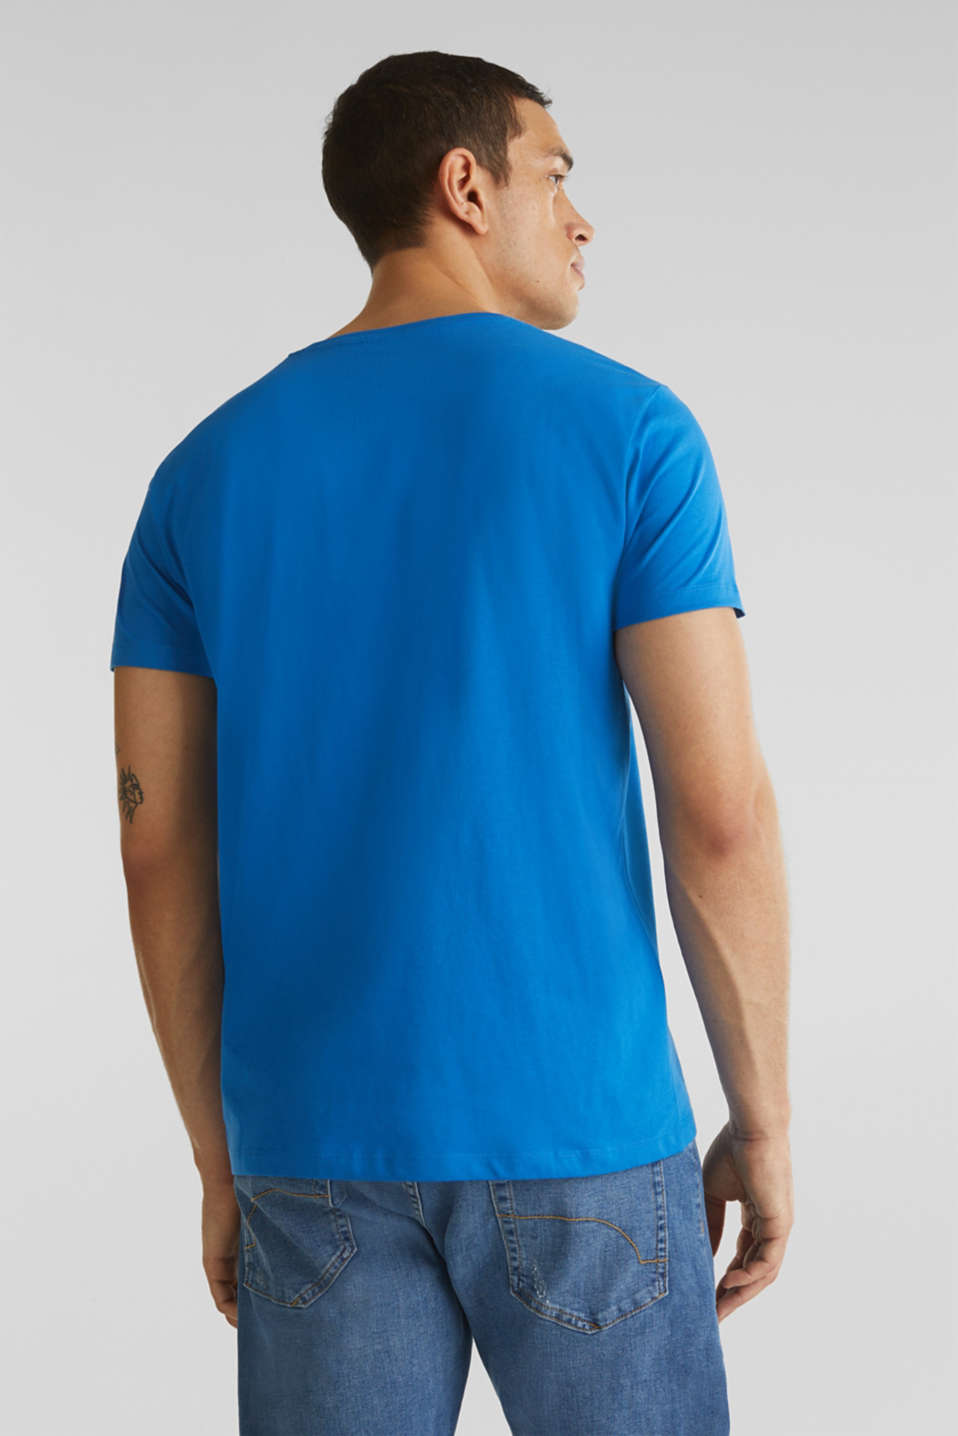 Jersey T-shirt in 100% cotton, BLUE, detail image number 3